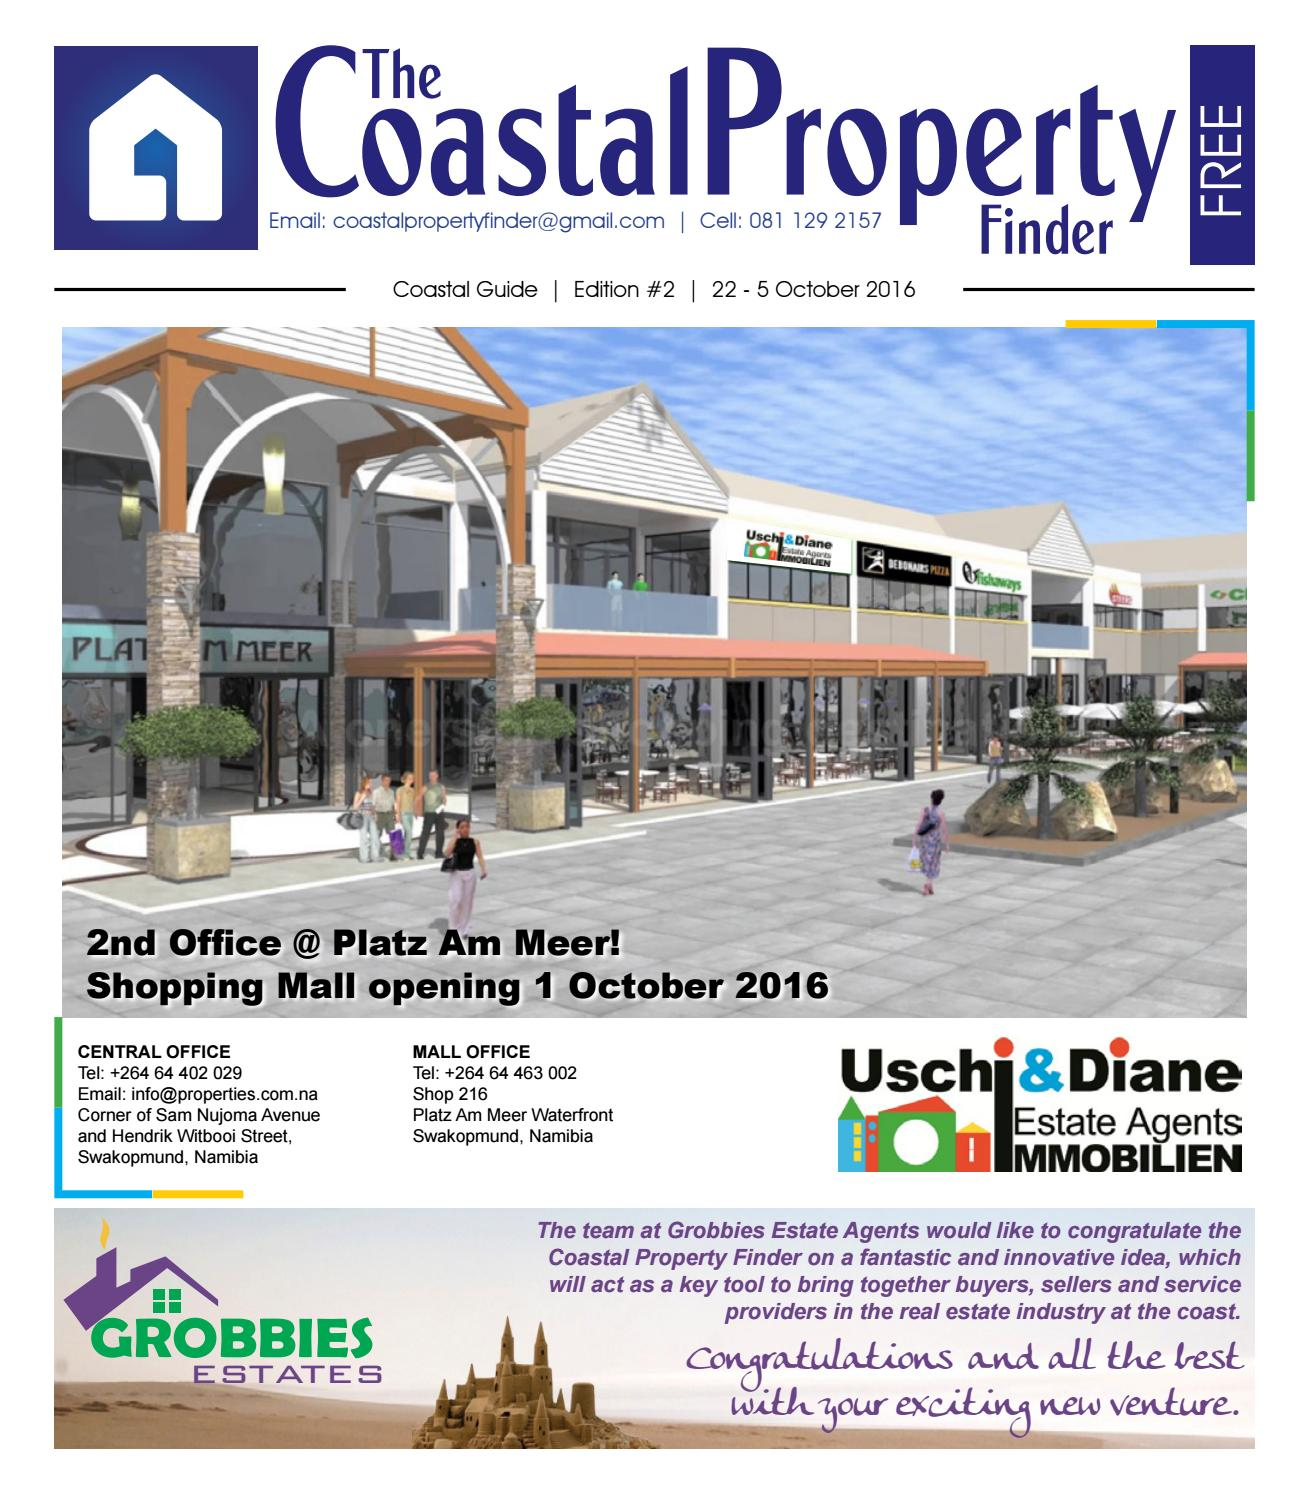 Namibia Immobilien Coastal Property Finder Issue 2 23 Sep 2016 By Coastal Property